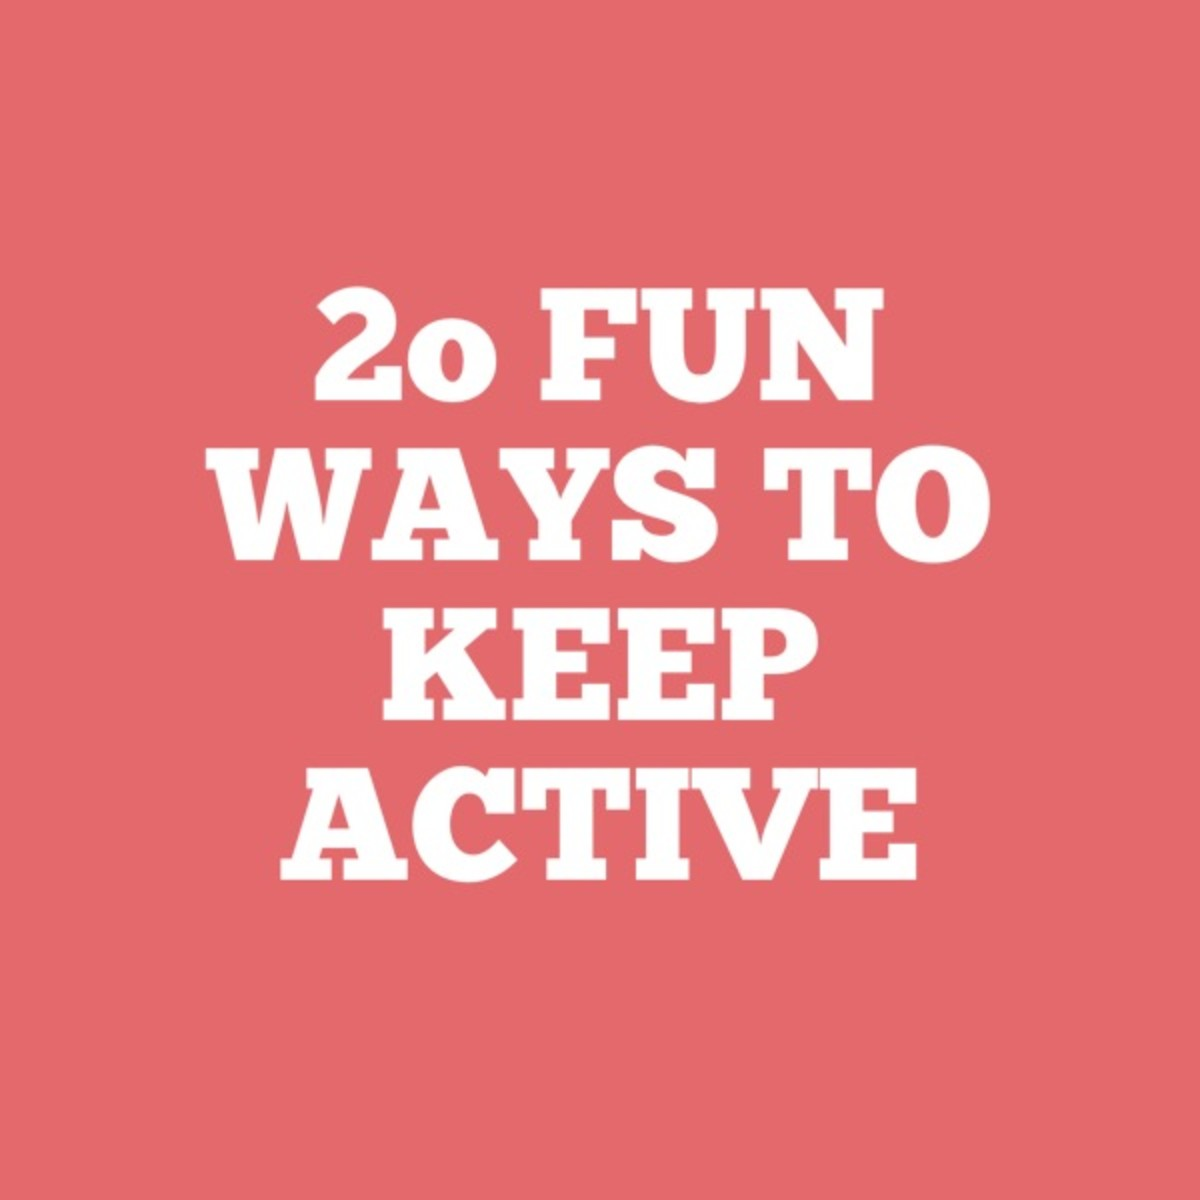 20 Fun Ways to Keep Active